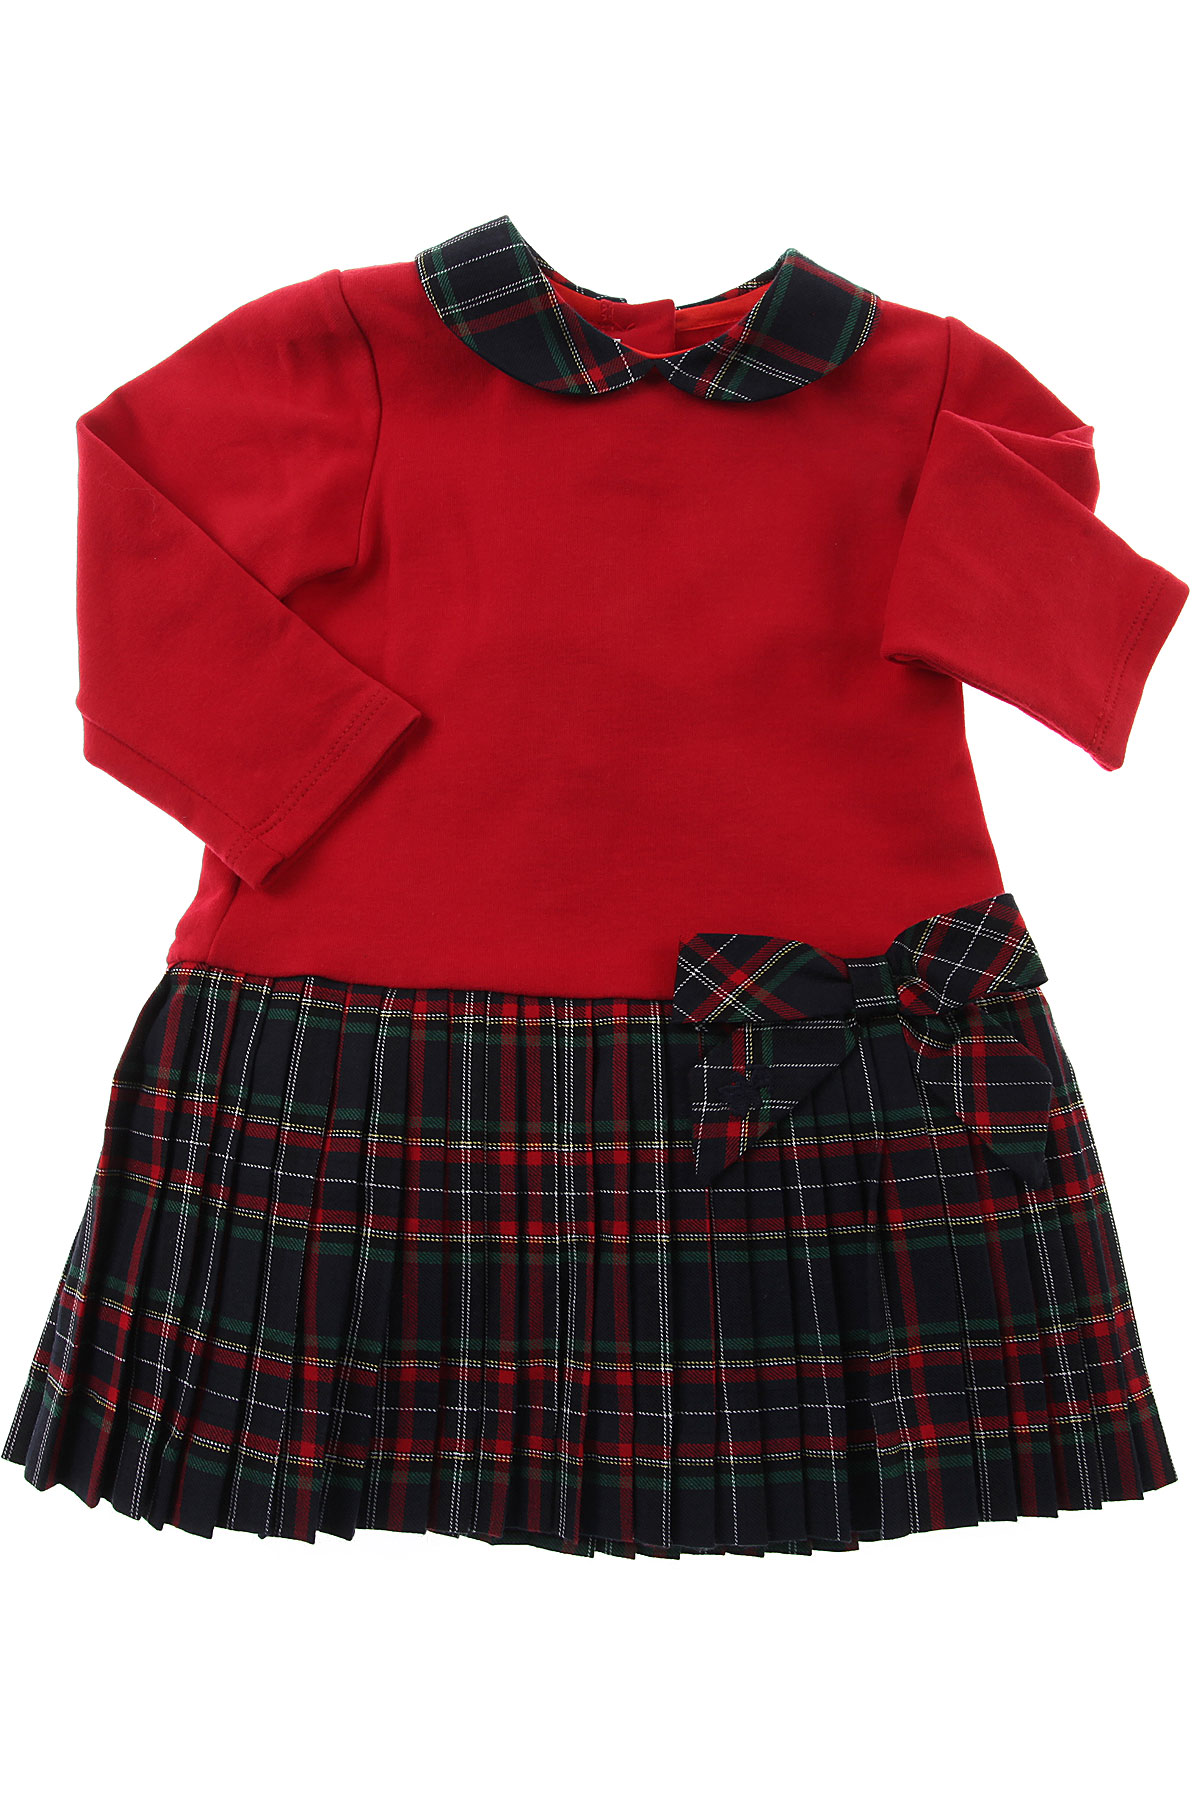 Image of Le Bebe Baby Dress for Girls, Red, Cotton, 2017, 12M 18M 3M 9M